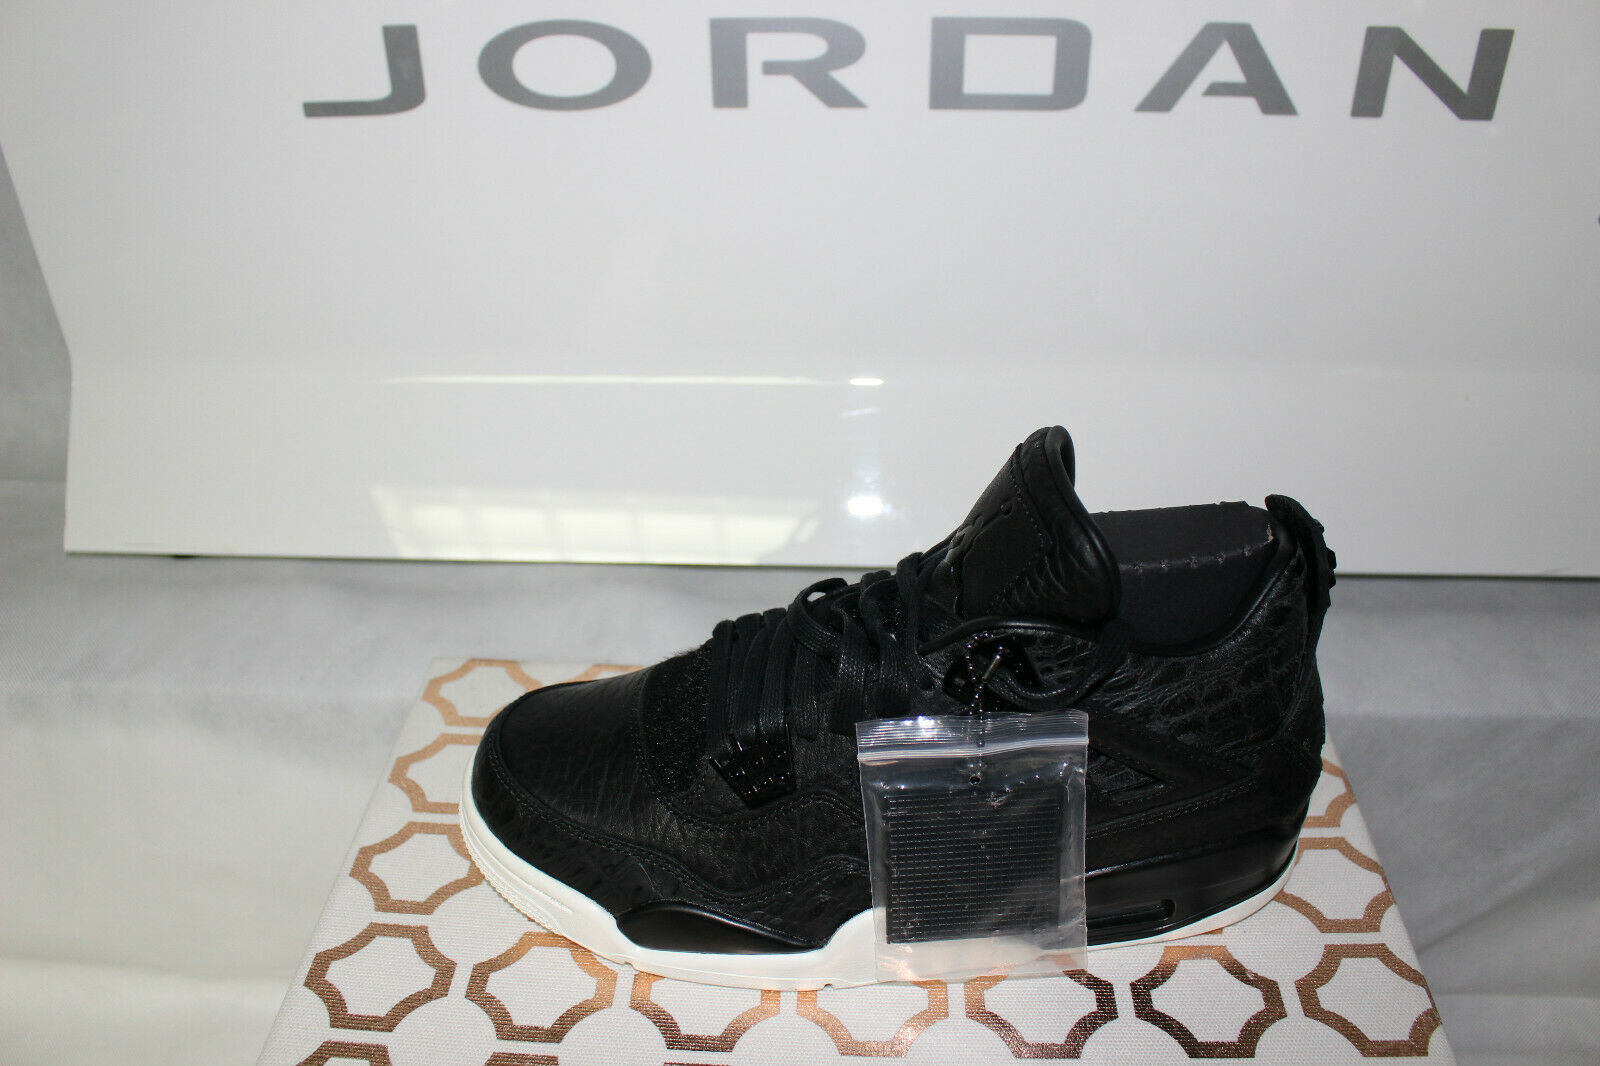 c819f12739b Nike Jordan Retro 4 Retro Pony 819139-010, Brand New Rare Size 8.5 Hair  Premium njgkvr1705-Athletic Shoes